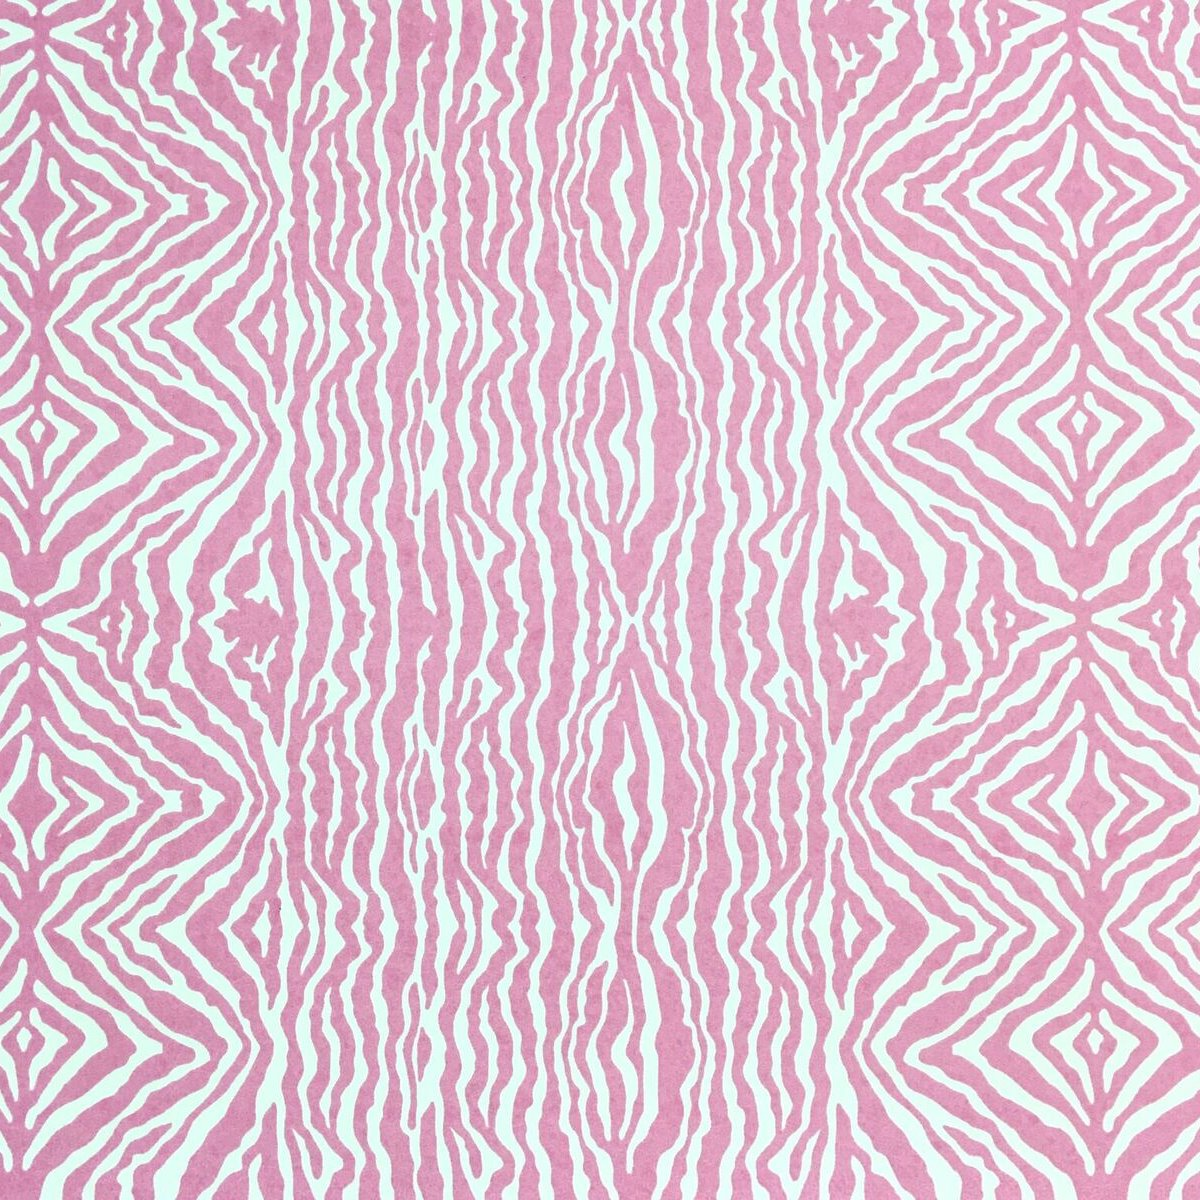 zebra stripe wallpaper stuff - photo #10